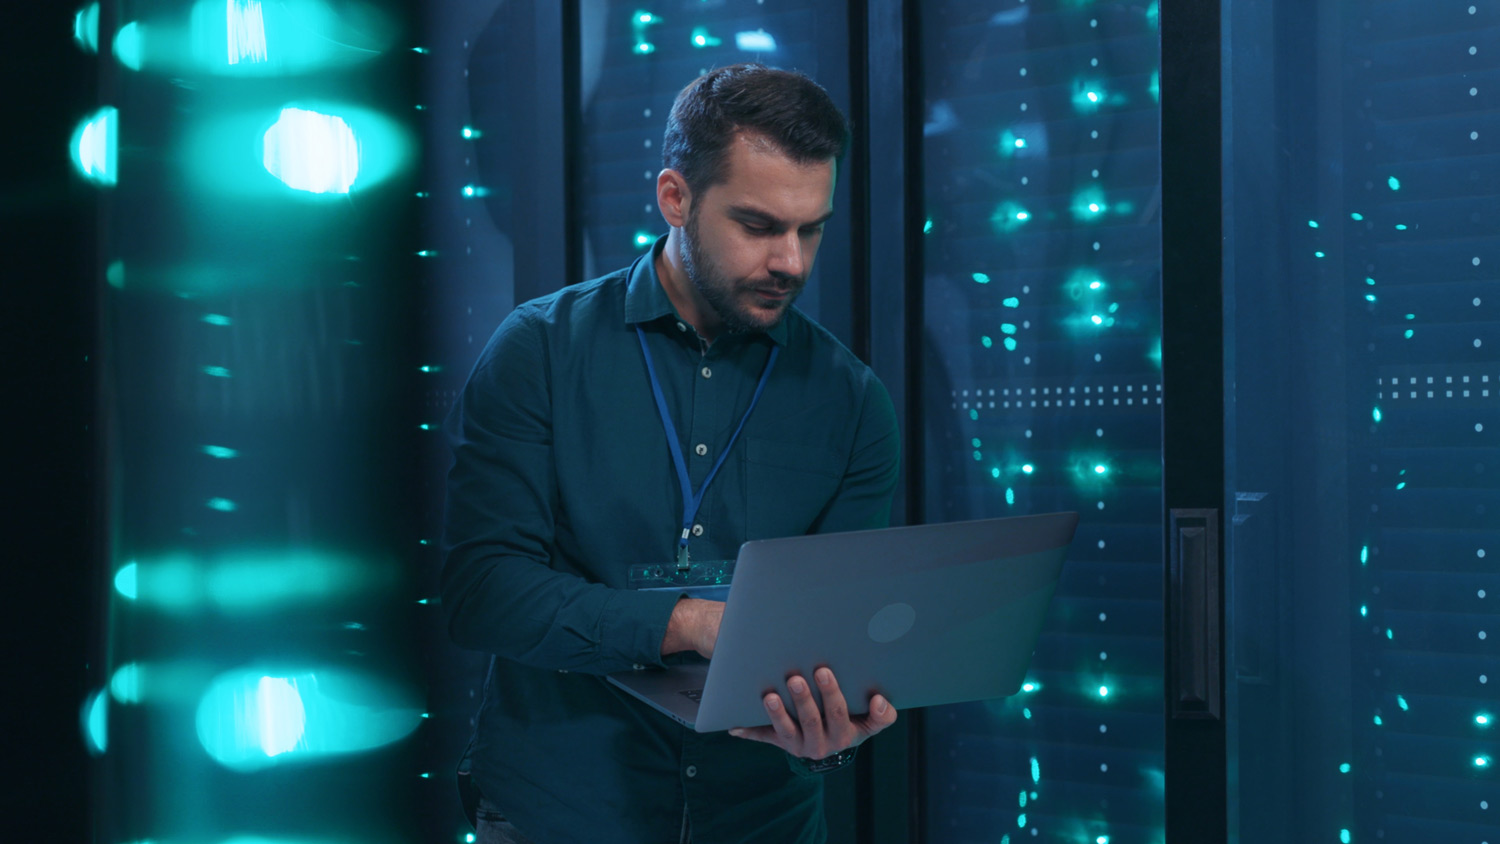 male technician using laptop with server racks in background representing Data Recovery & Backup